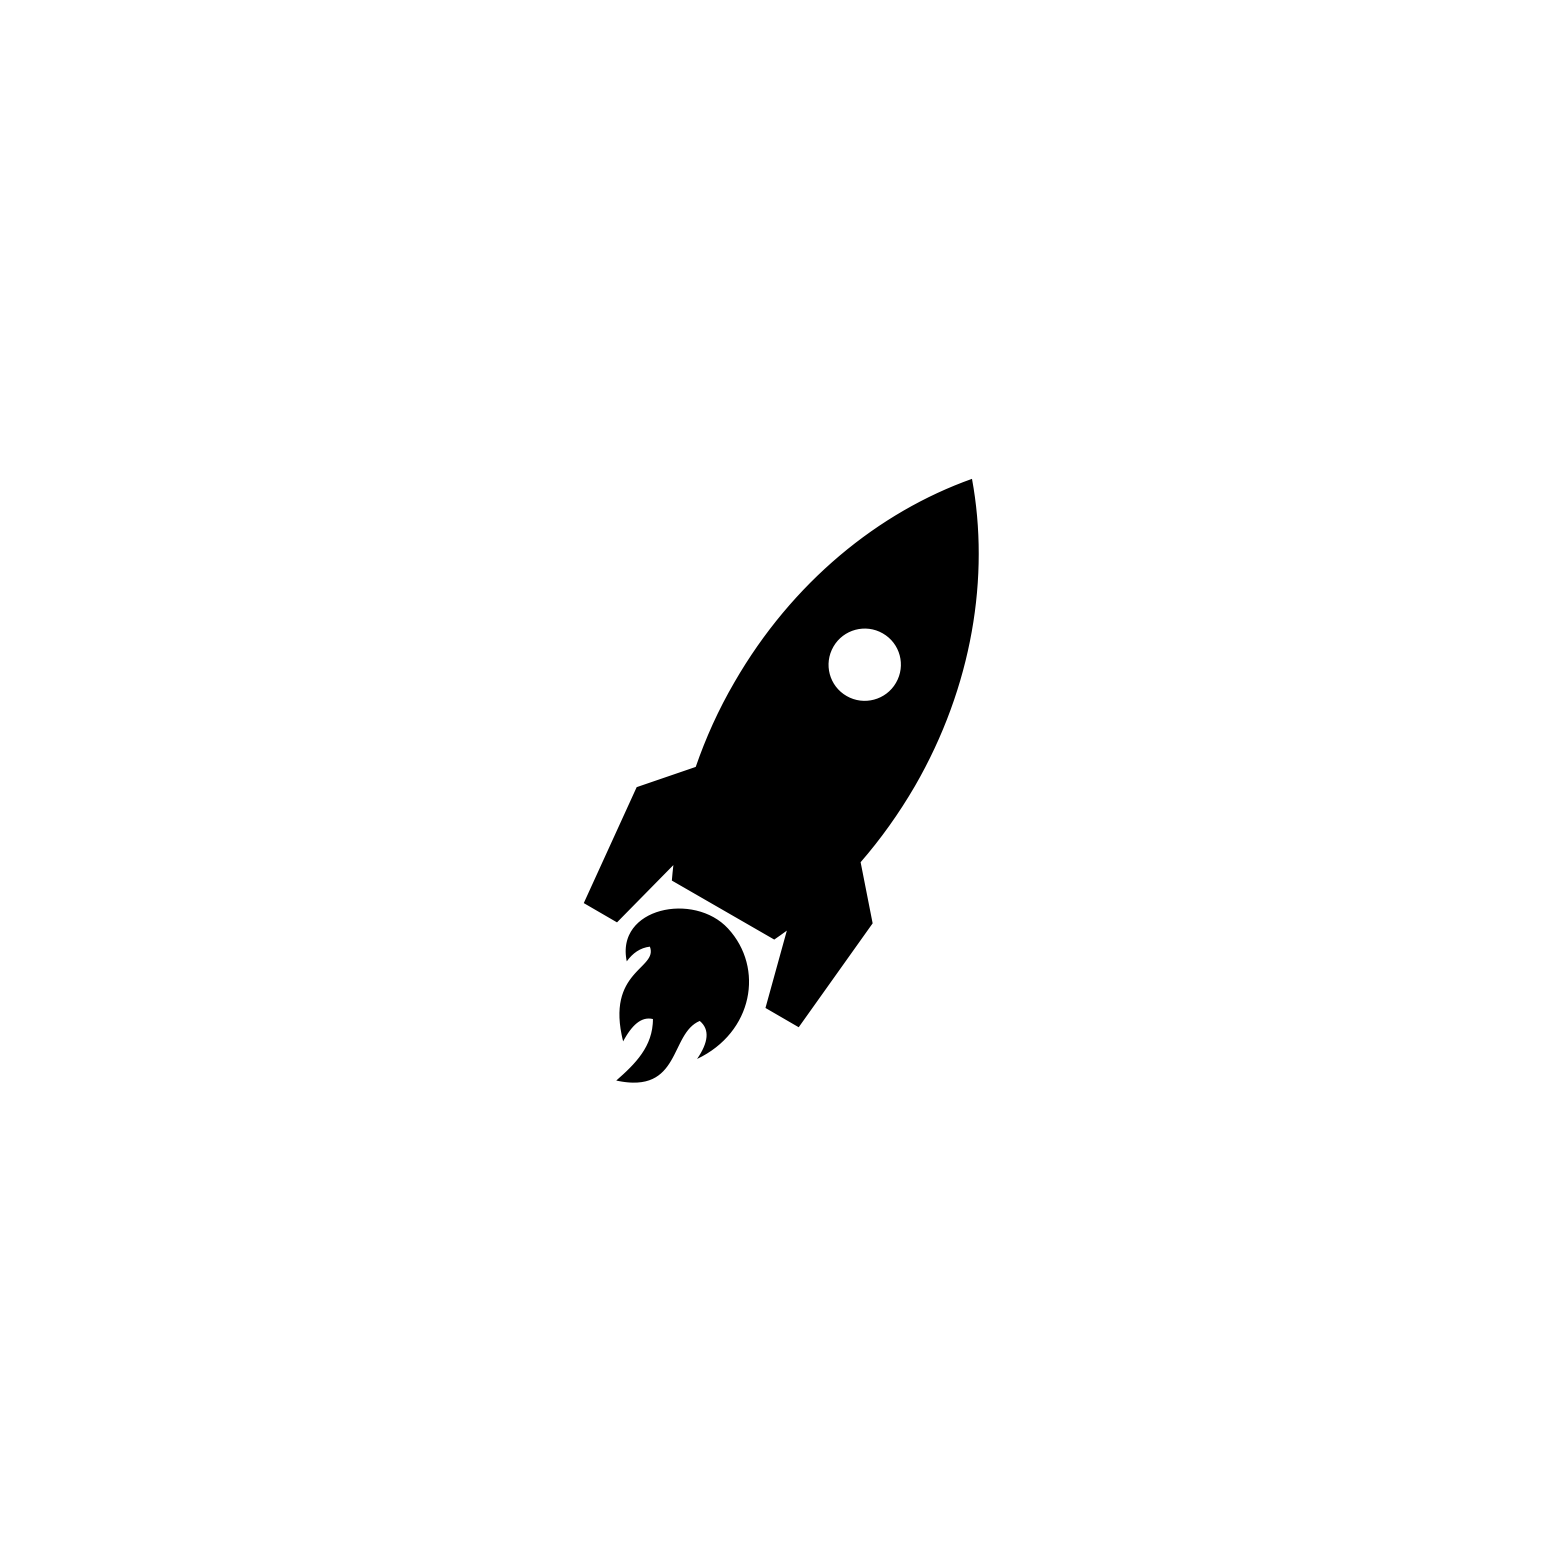 an icon to symbolize startups